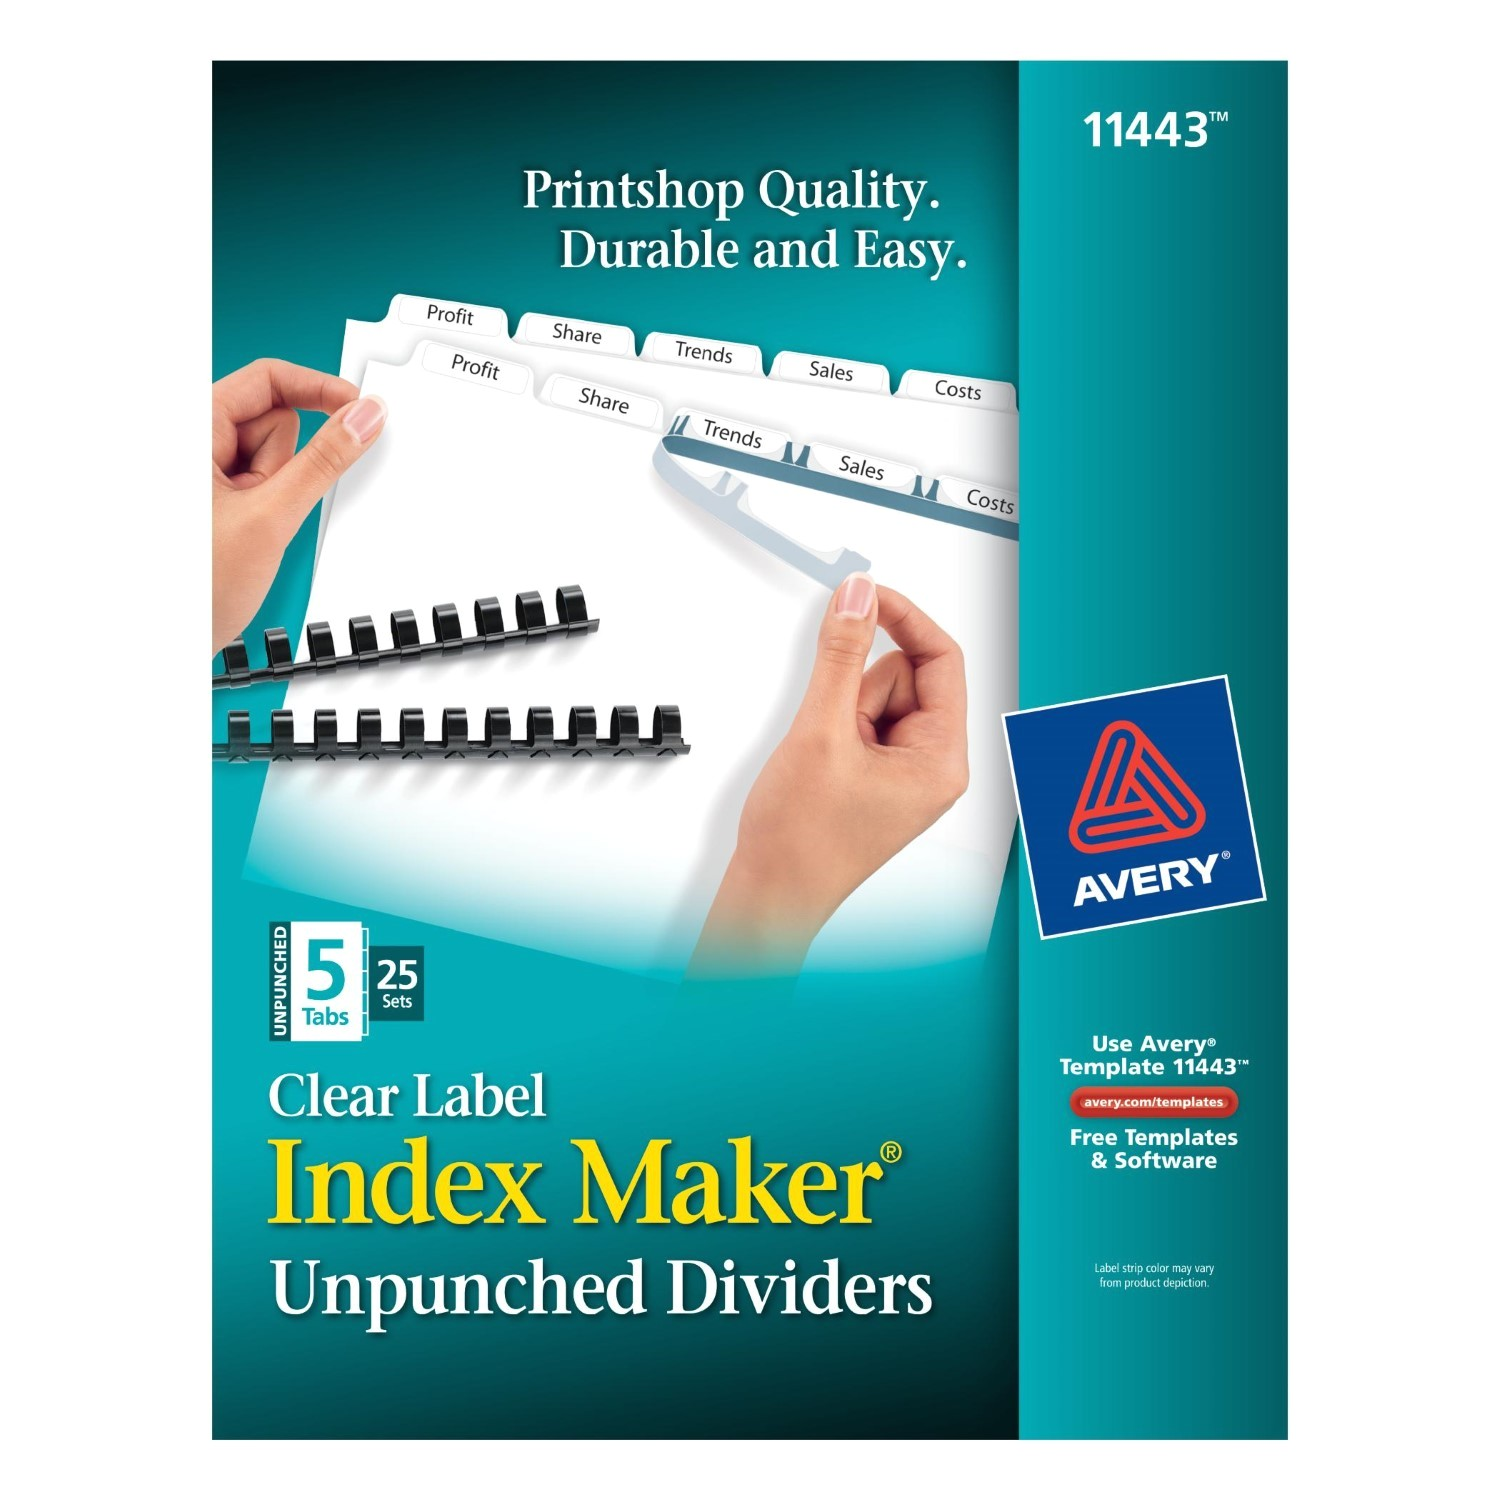 Avery 5 Tab Template 11443 Avery Index Maker Unpunched Label Dividers White 5 Tabs